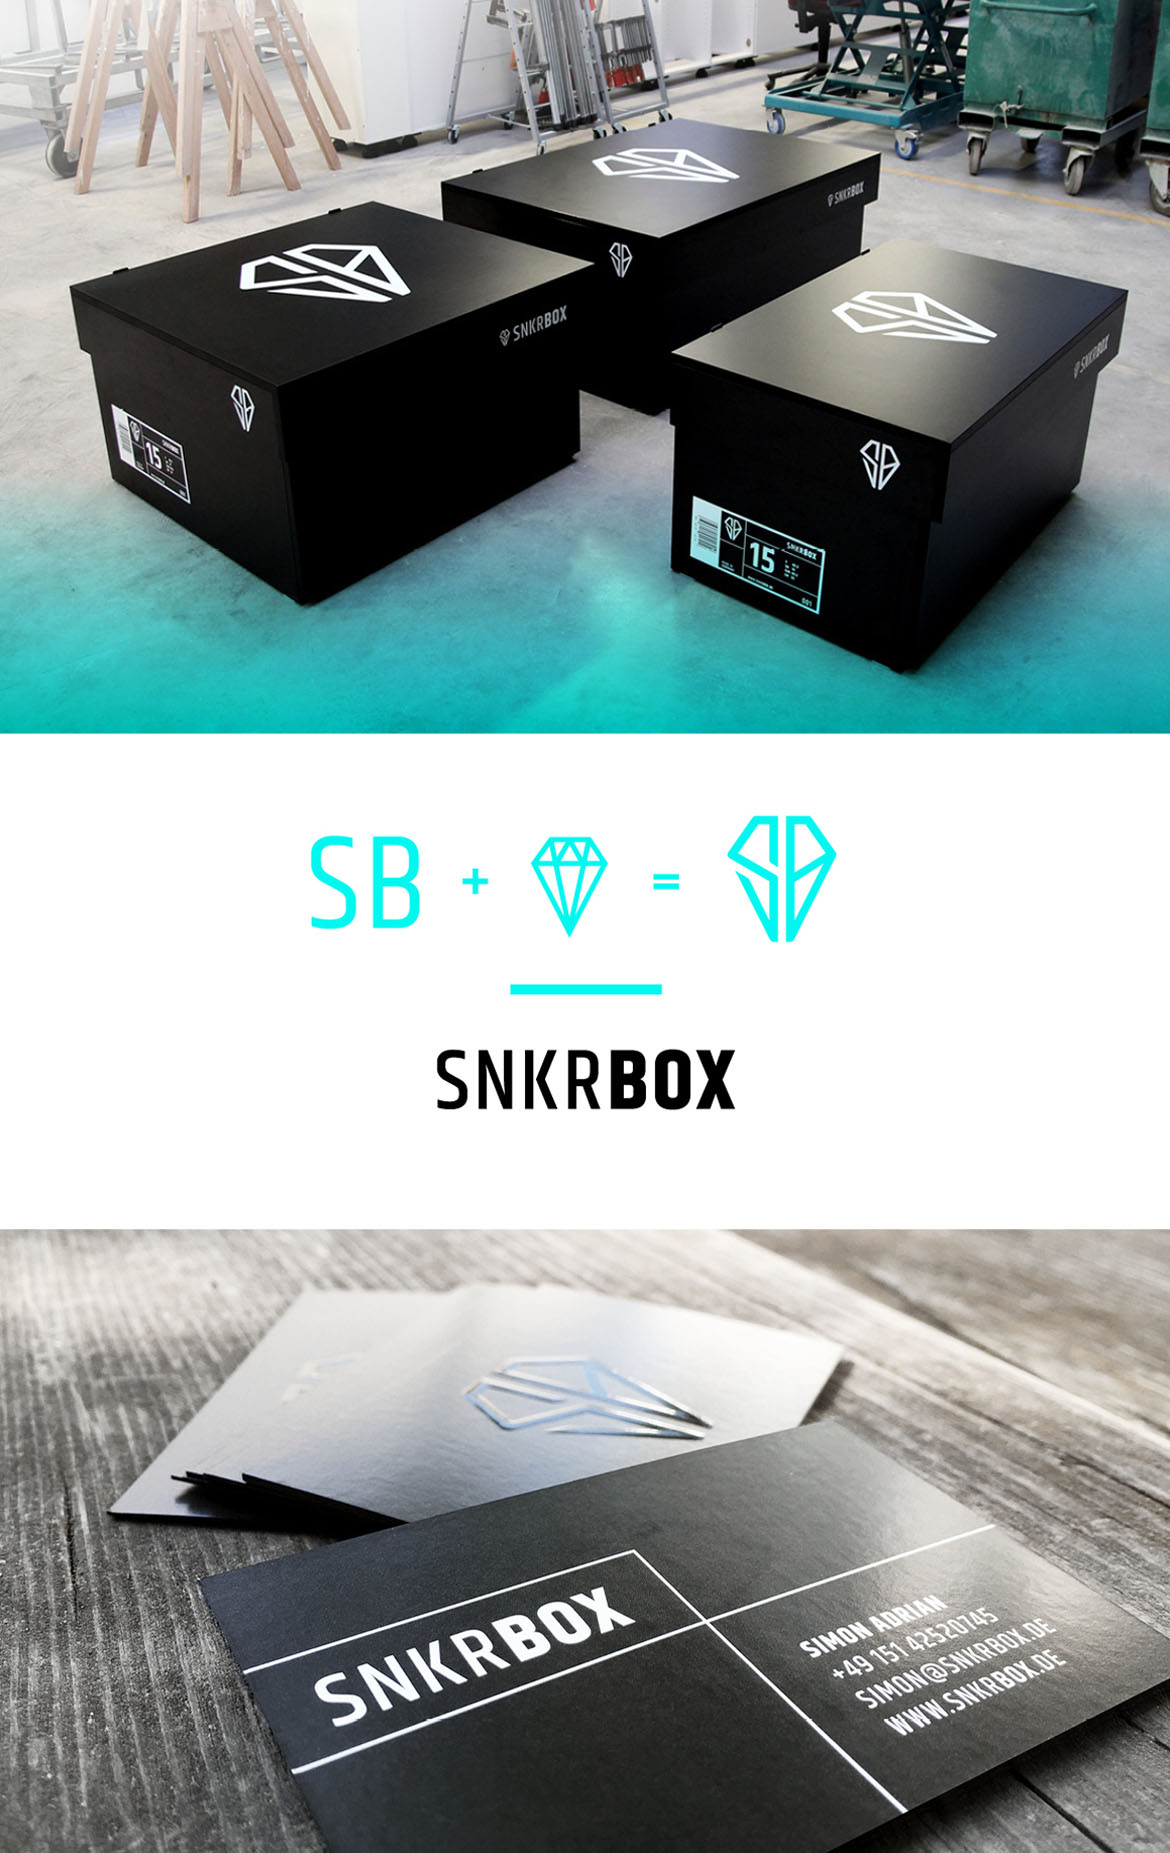 Snkrbox_01